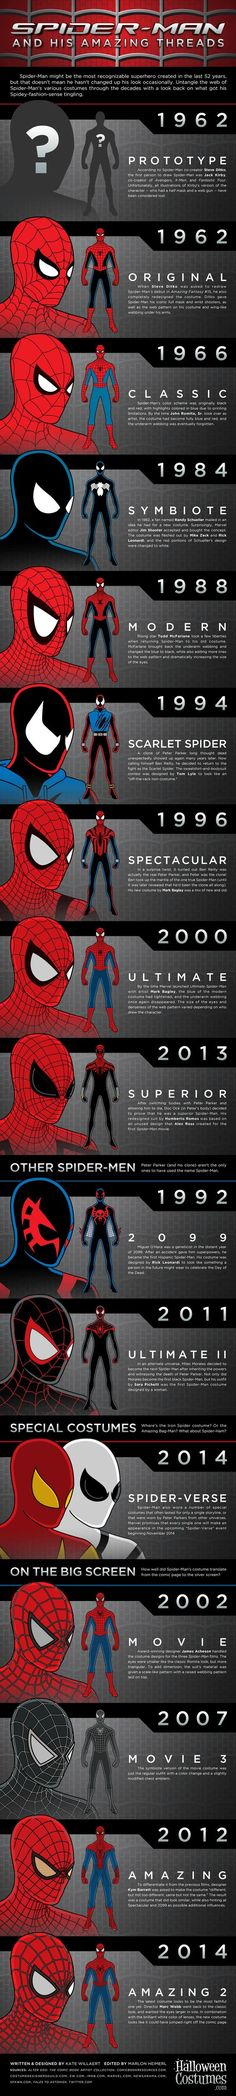 How much do you know about Spiderman's evolution over time? Find out with this infographic!